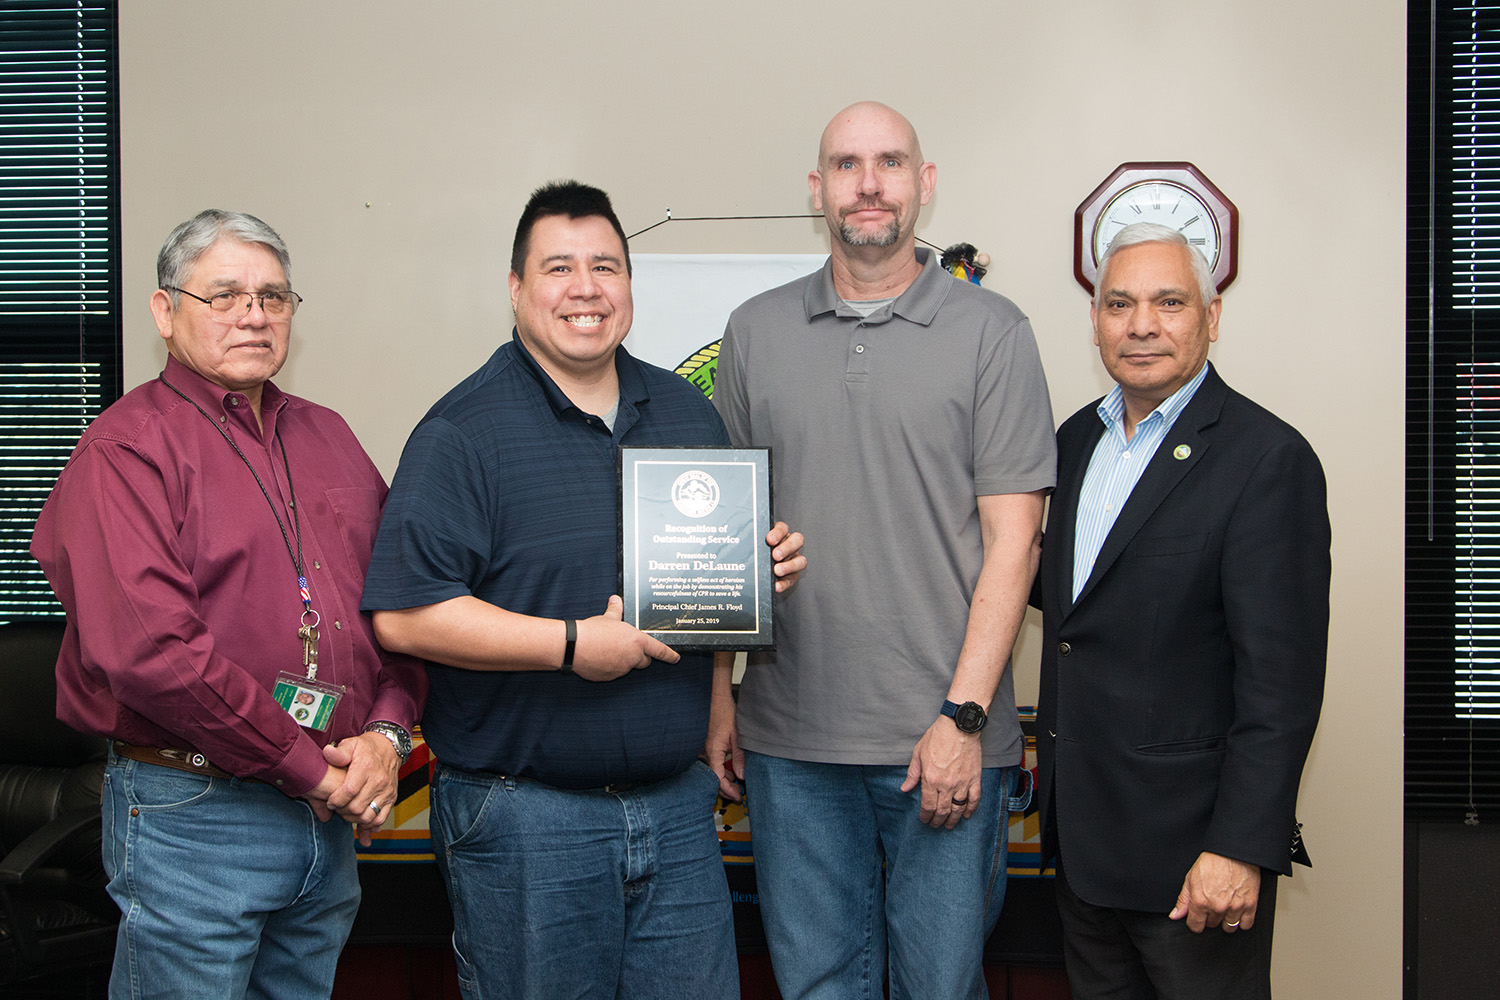 Muscogee (Creek) Citizen, Employee Recognized for Saving Citizen's Life